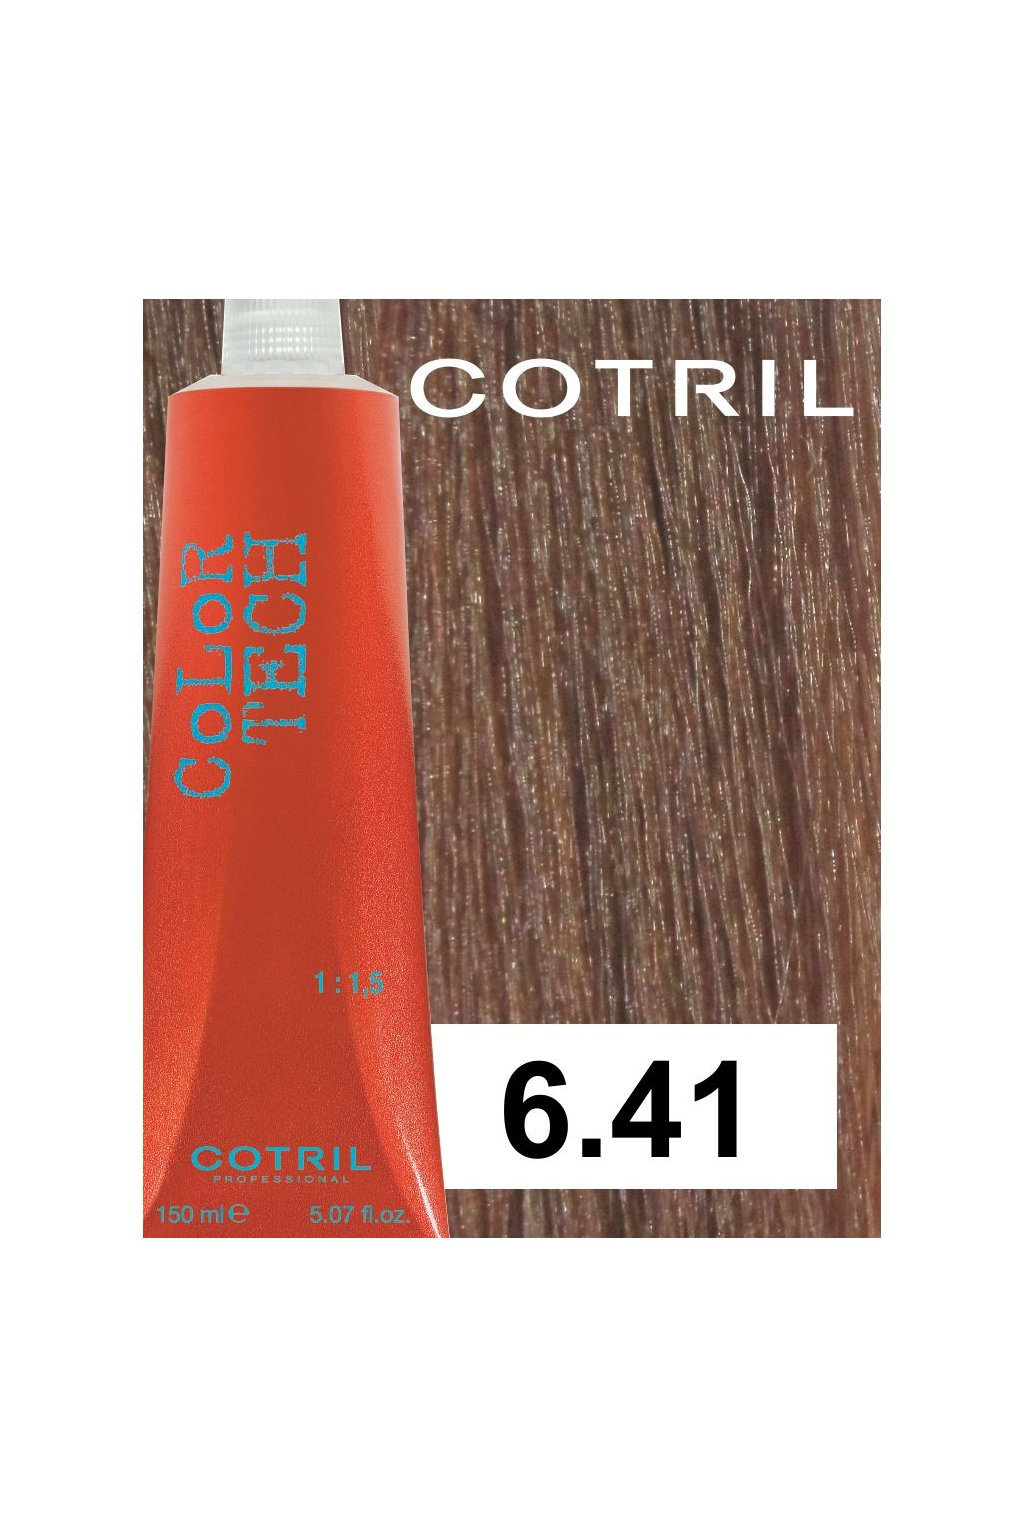 6 41 ct cotril